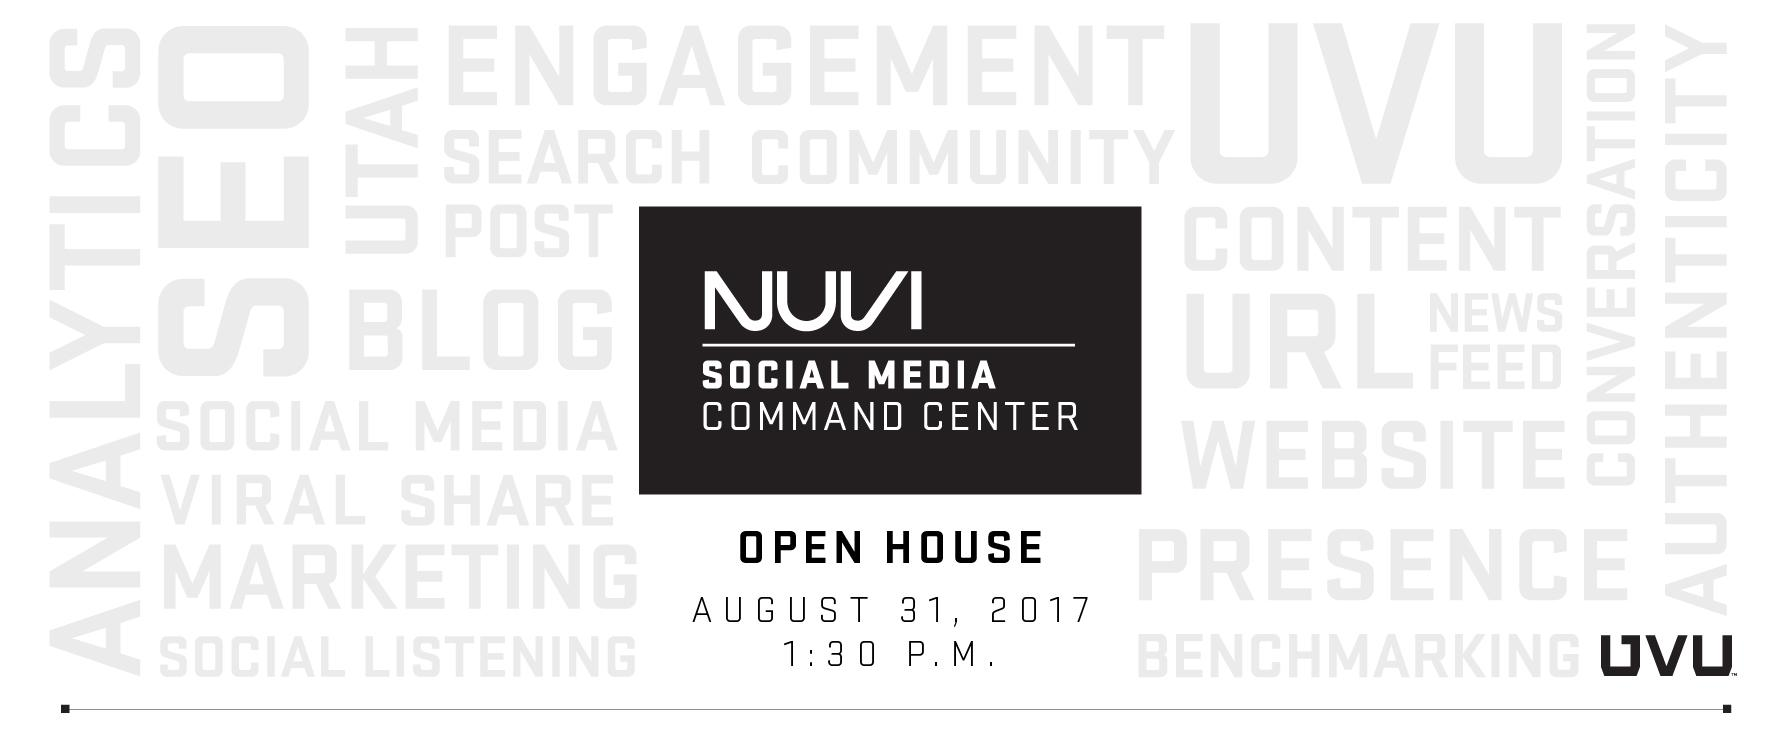 NUVI Social Media Command Center Open House August 31 at 1:30 p.m.